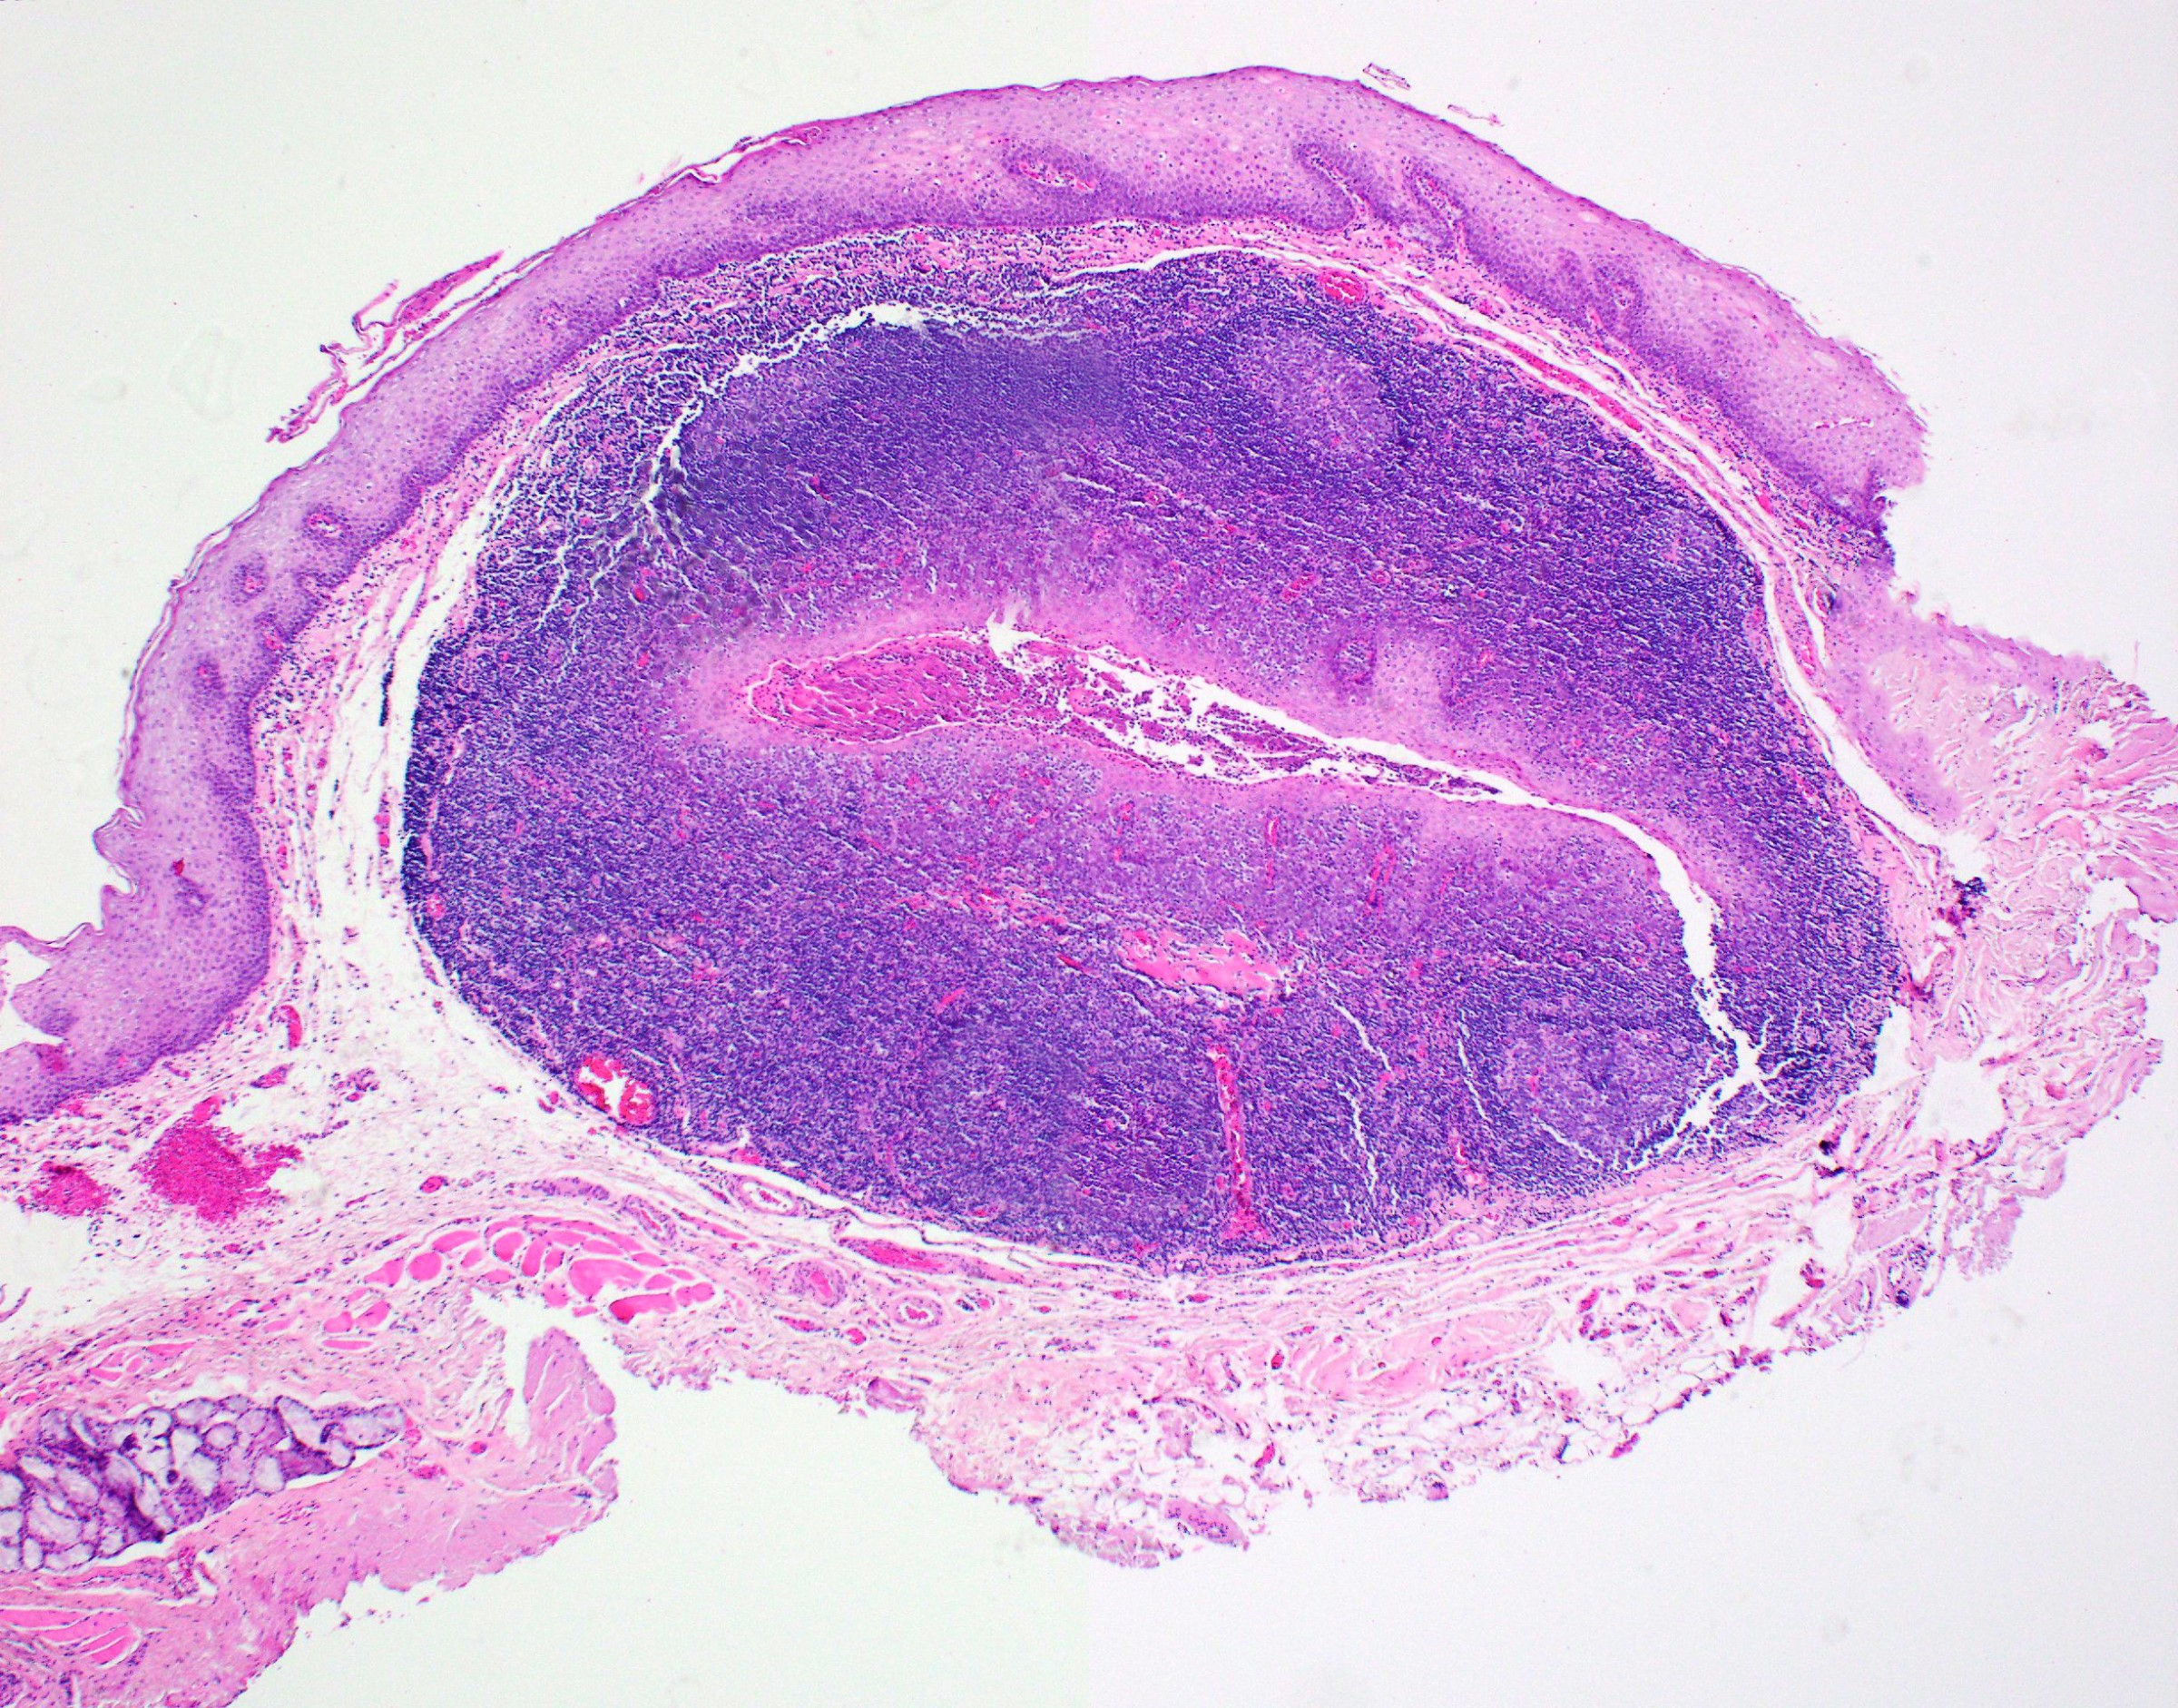 Epithelial crypt formation